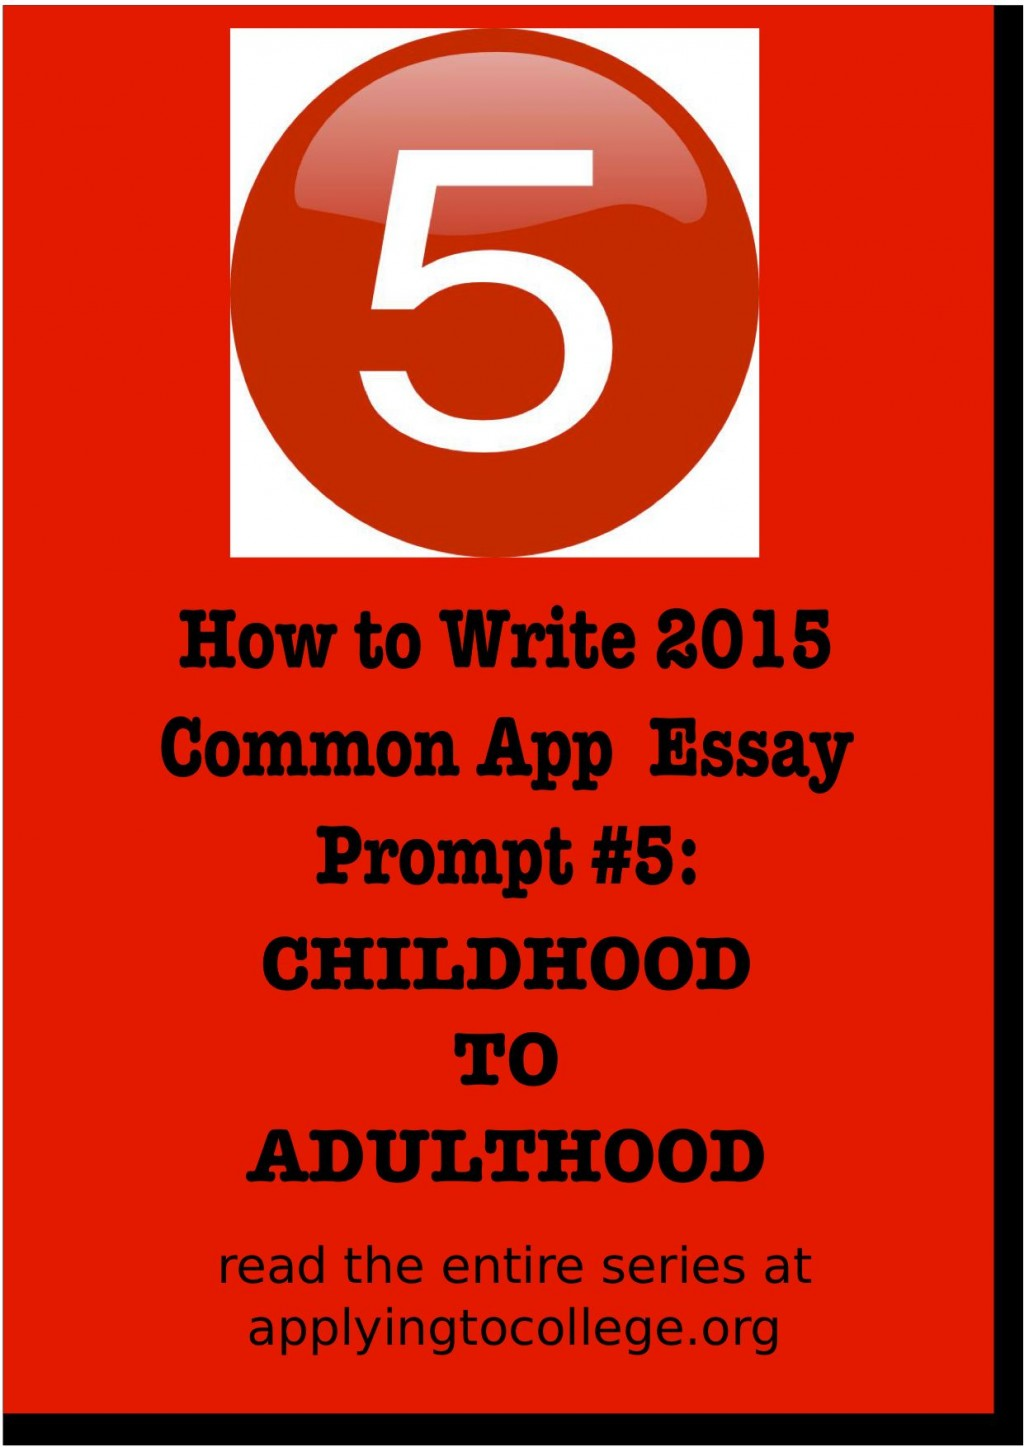 021 Prompts For College Essays Essay Unusual 2015 Large